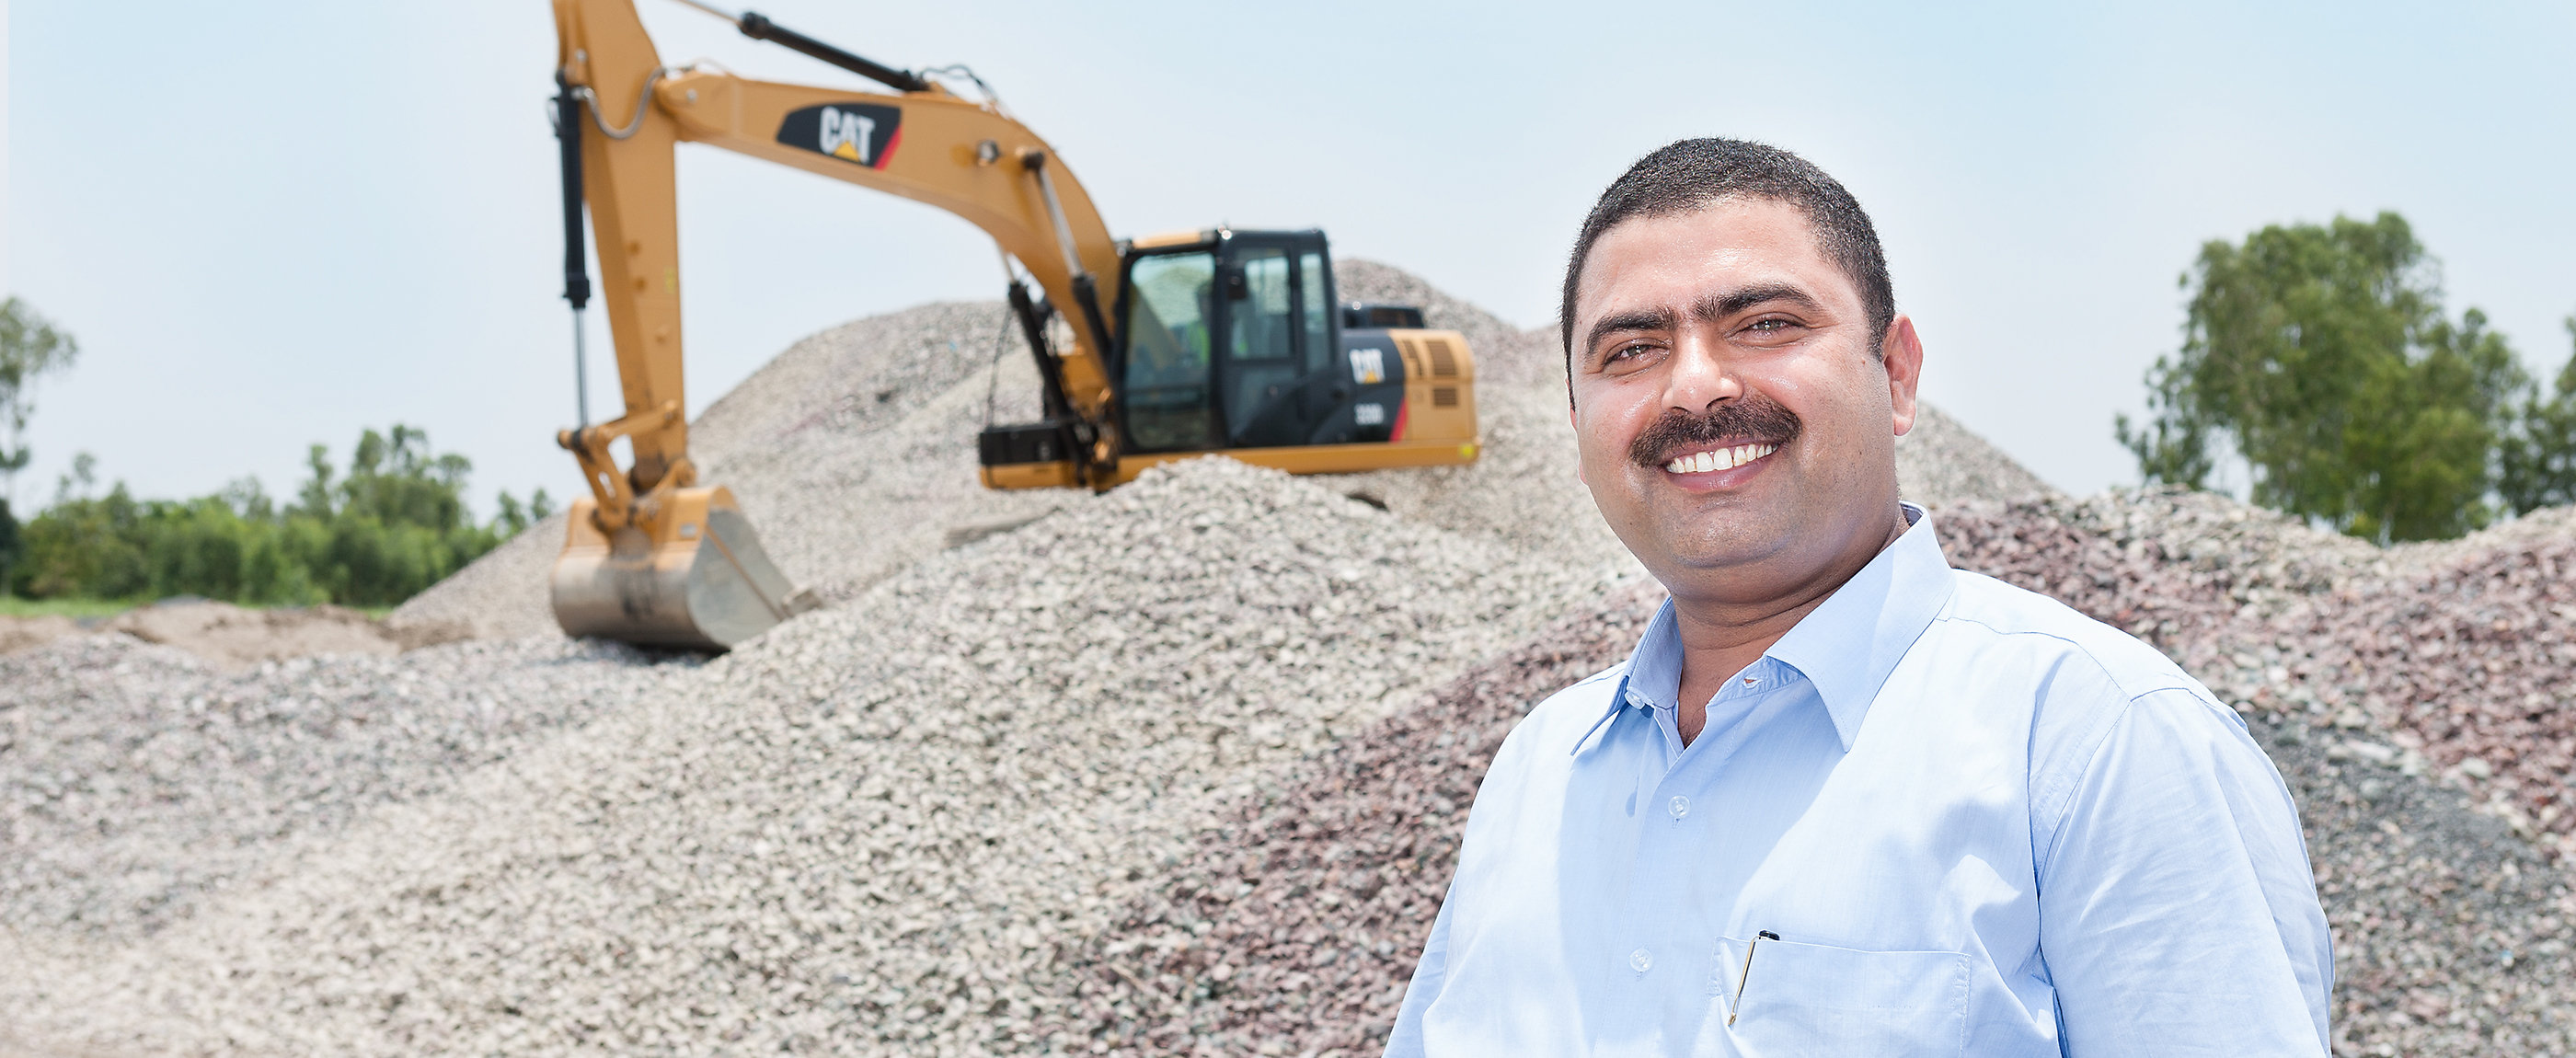 Male customer using Ipad with Excavator working in the background